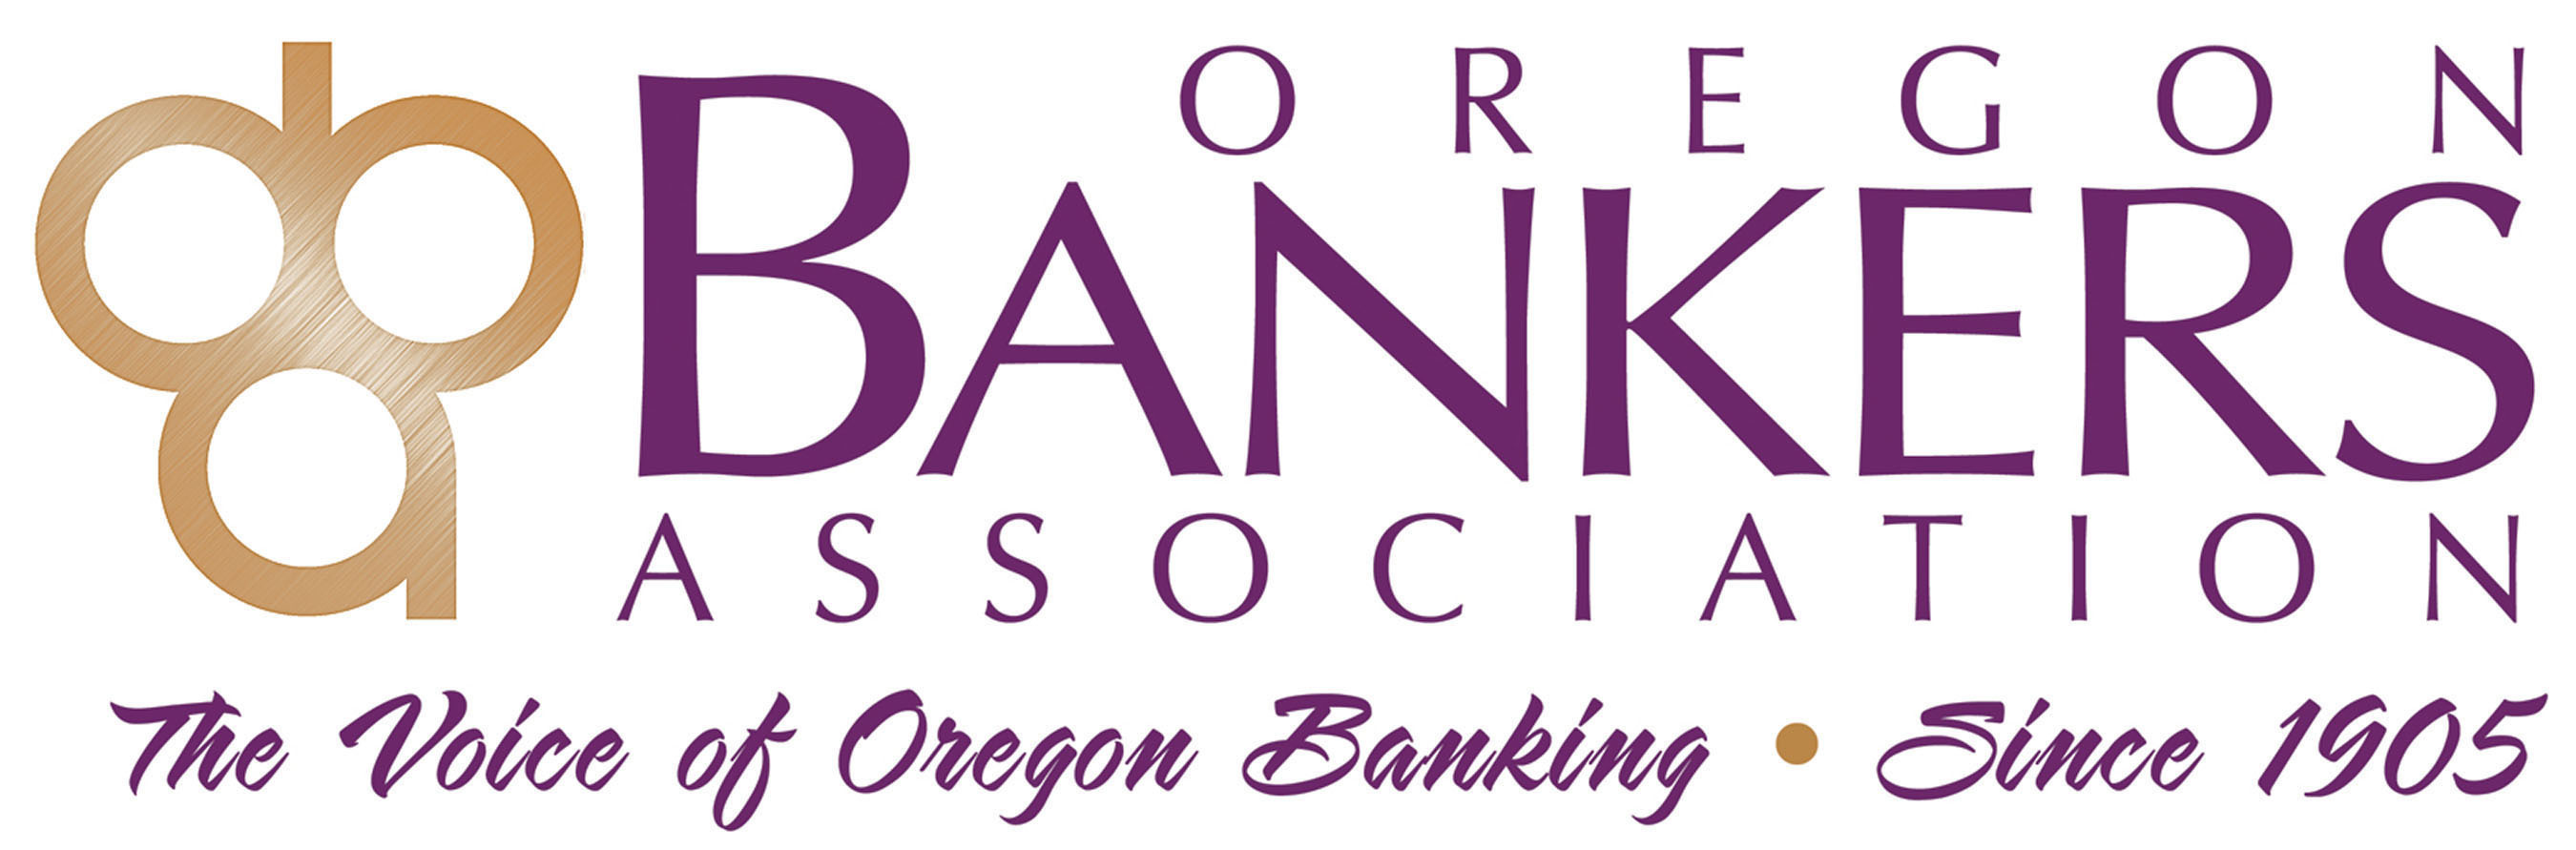 Oregon Bankers Association Presents 2014 Community Applause Awards